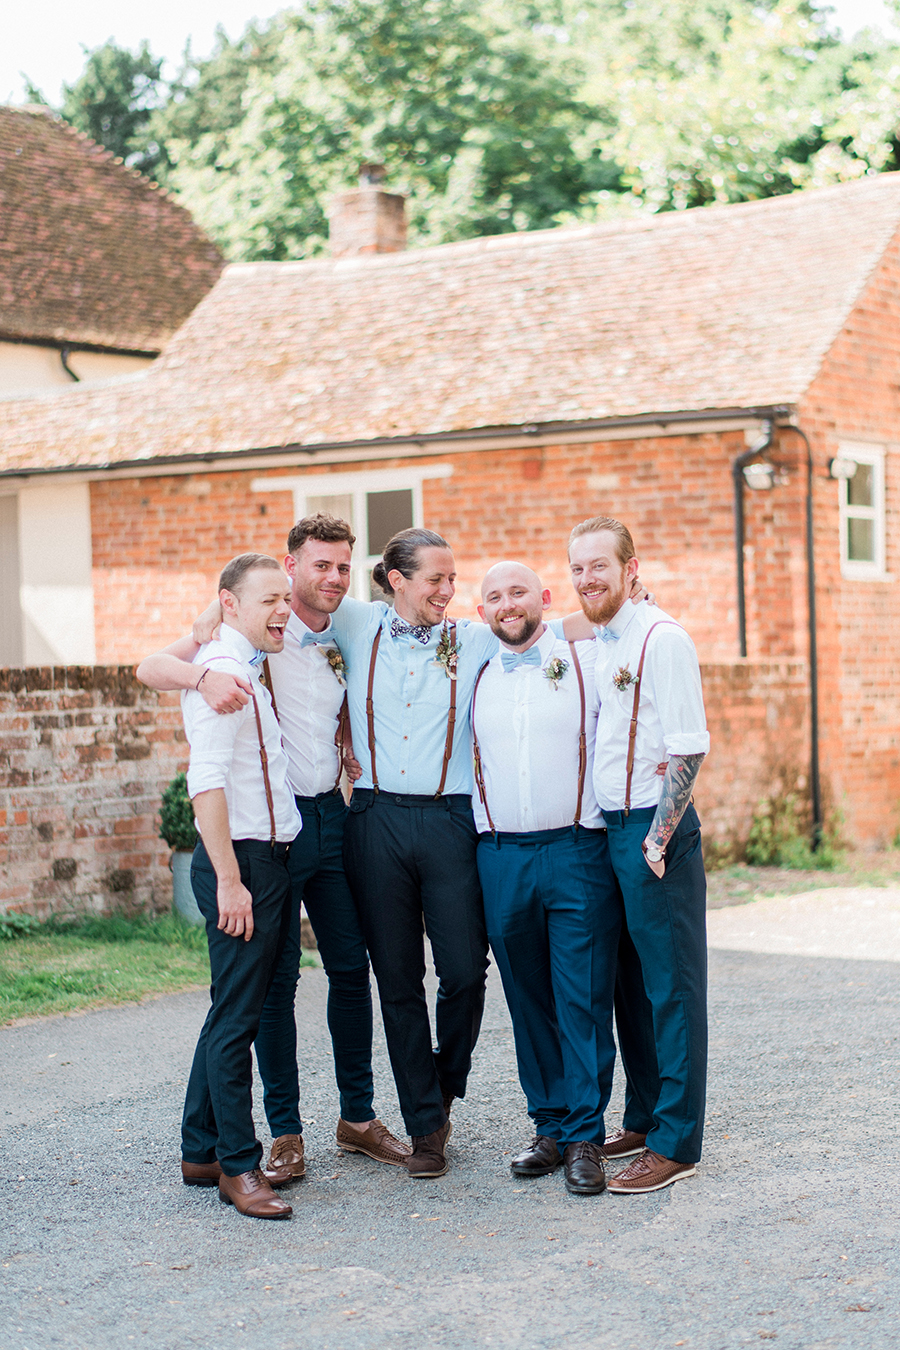 Dreamy boho wedding at Houchins Farm with images by Kathryn Hopkins Photography (25)